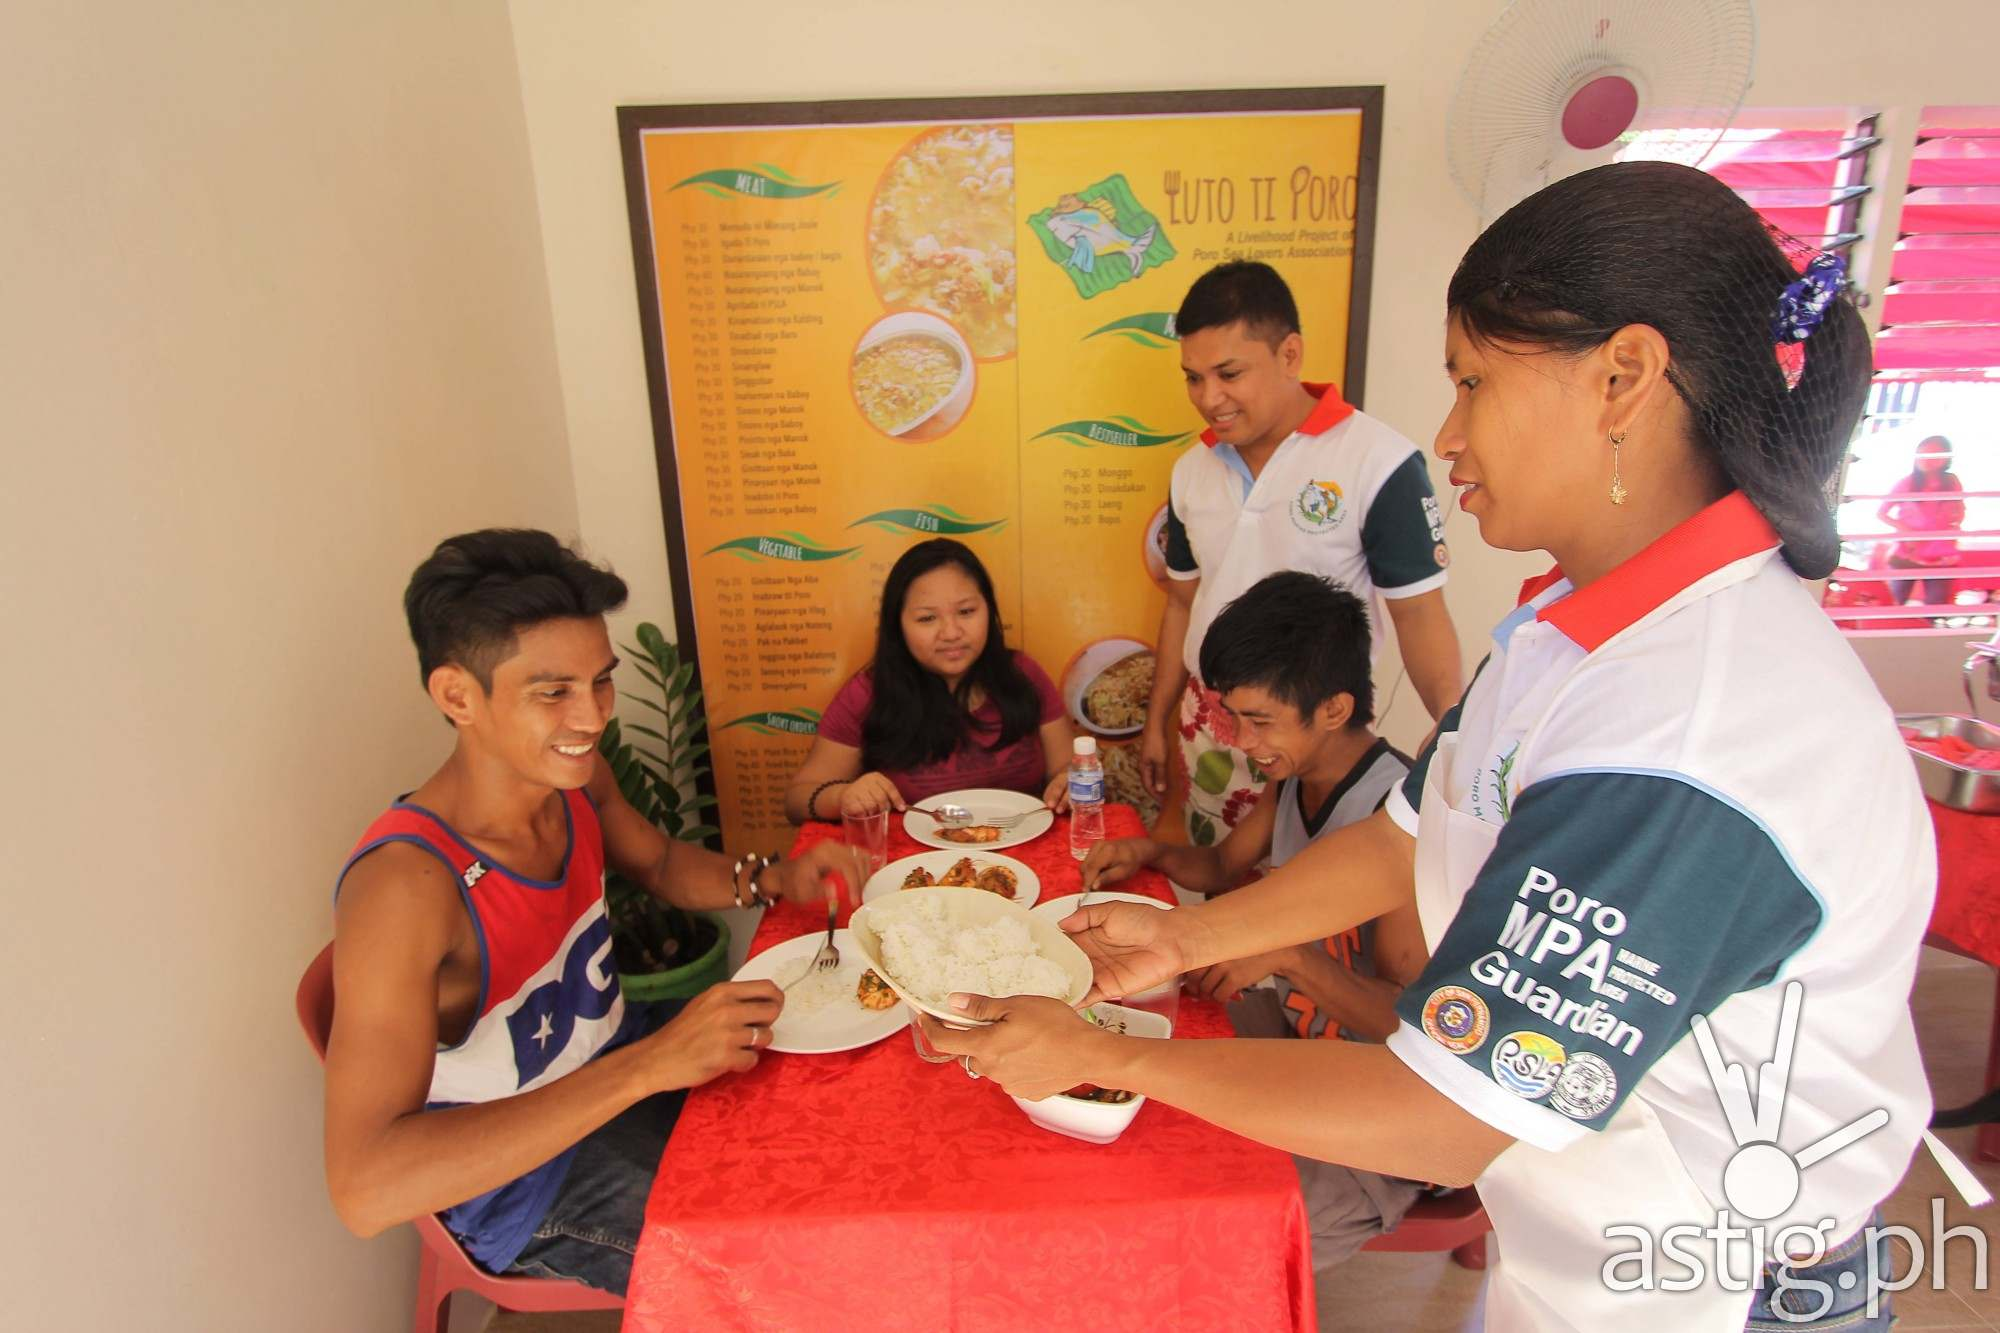 Affordable meals in Ilocano country? Wen, Manong! Luto ti Poro's tasty home-cooked local cuisines answers the need for taste, convenience and true value for money while helping the environment.